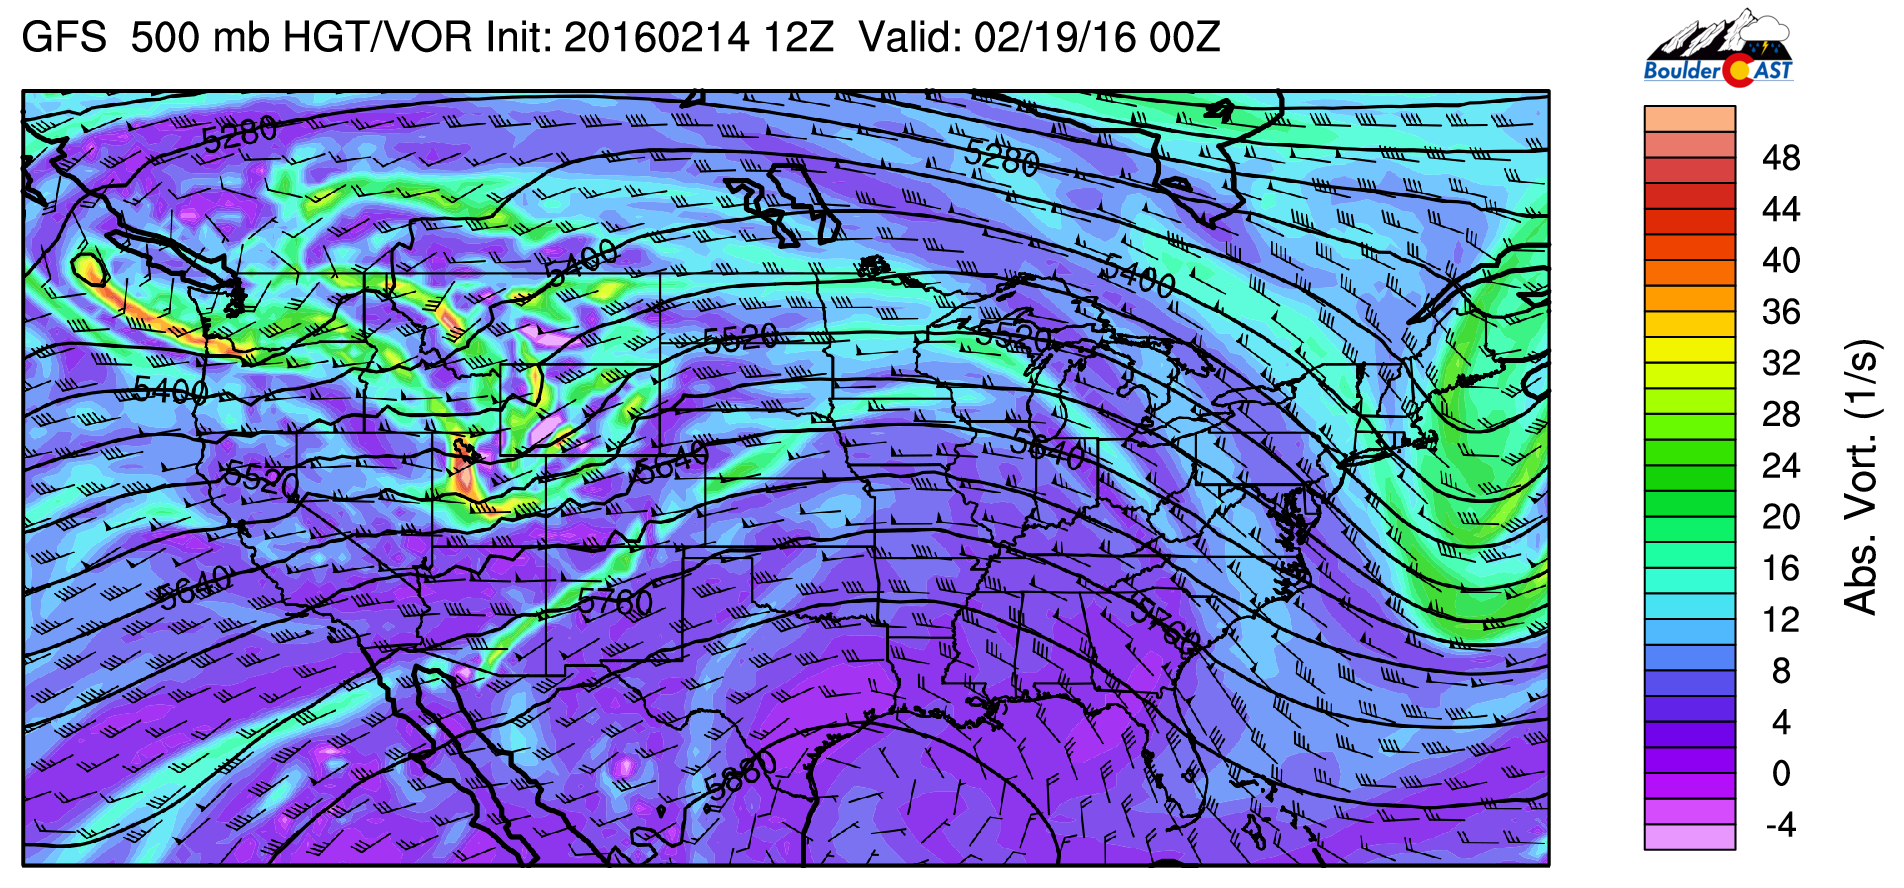 GFS 500 mb absolute vorticity for Friday